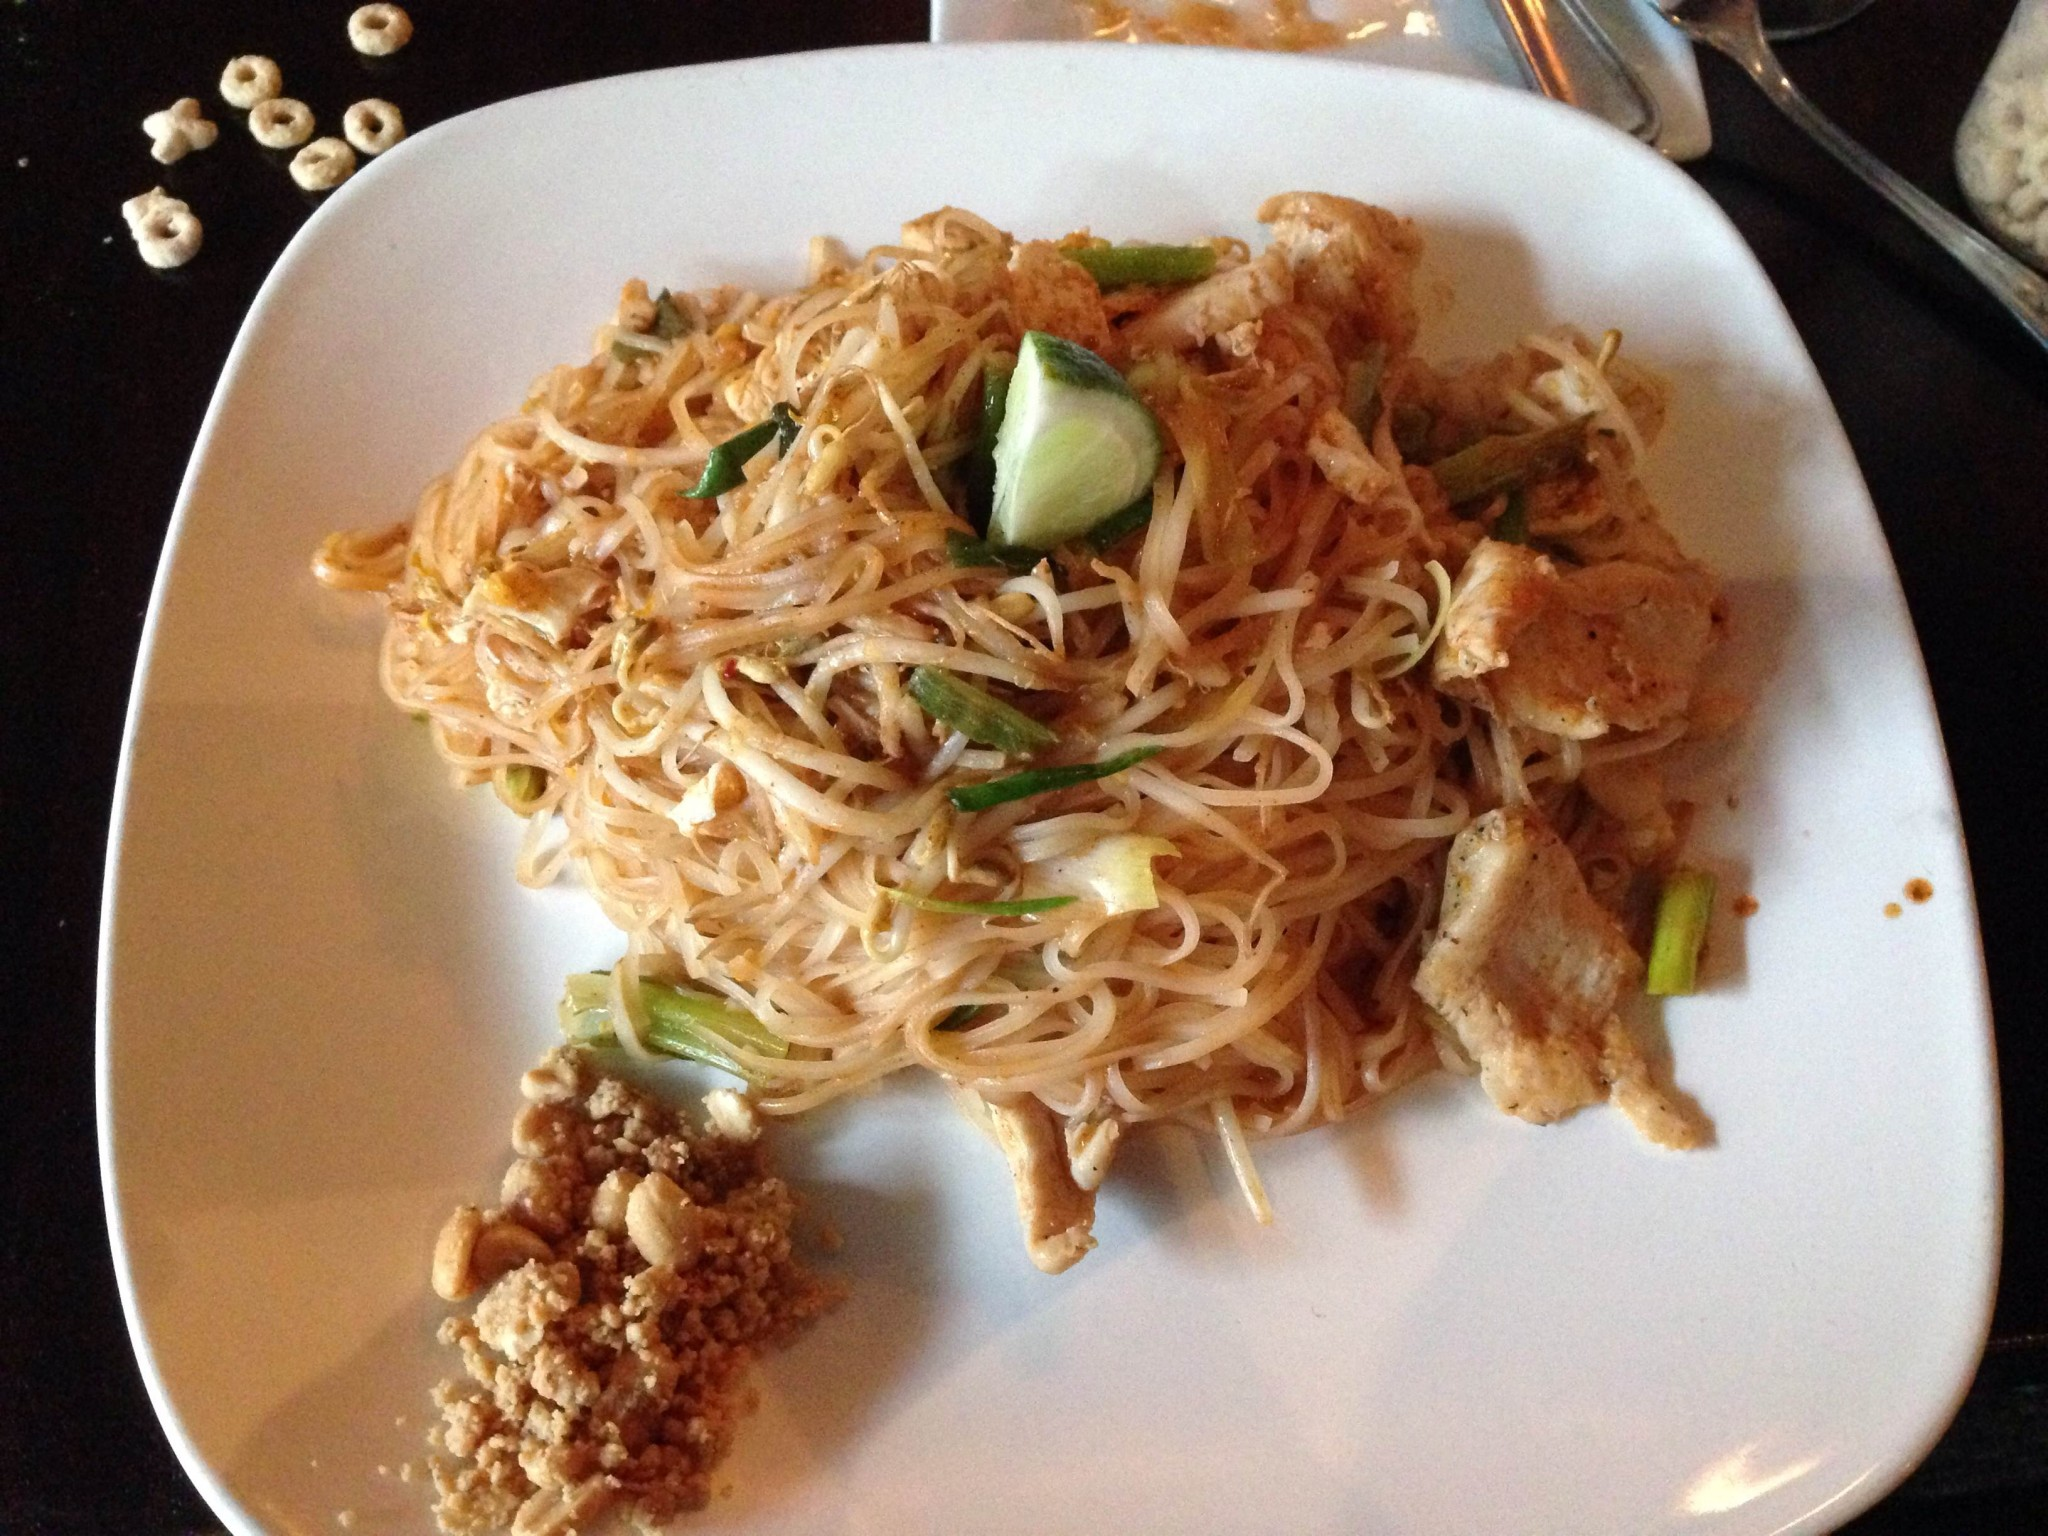 Aroy thai fusion surprising kid friendly but only early for Aroy thai cuisine menu